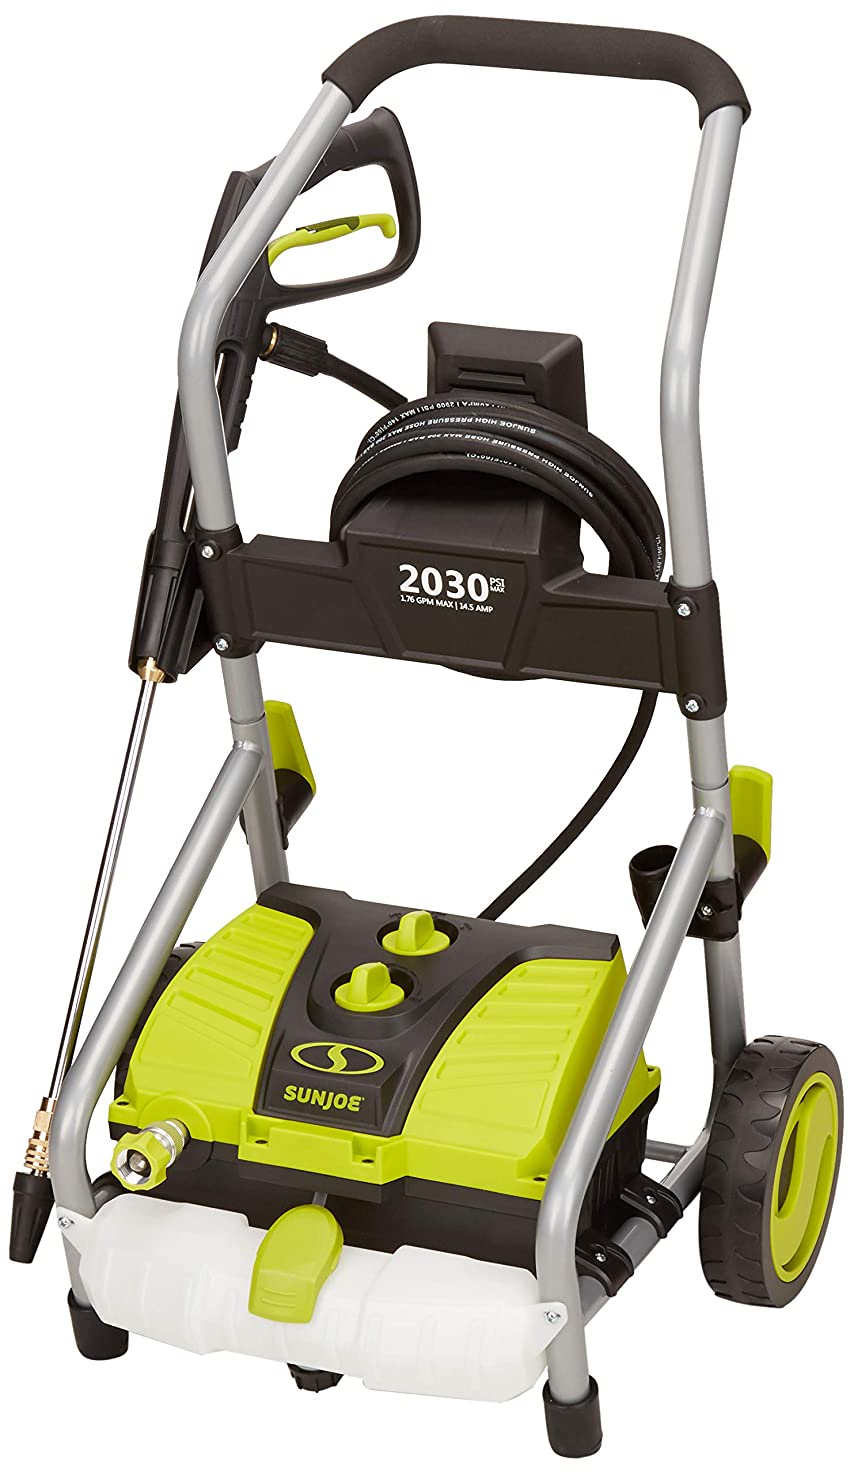 Sun Joe SPX4000-PRO 2030 PSI 1.76 GPM 14.5-Amp Electric Pressure Washer, w/Turbo Head Spray Nozzle